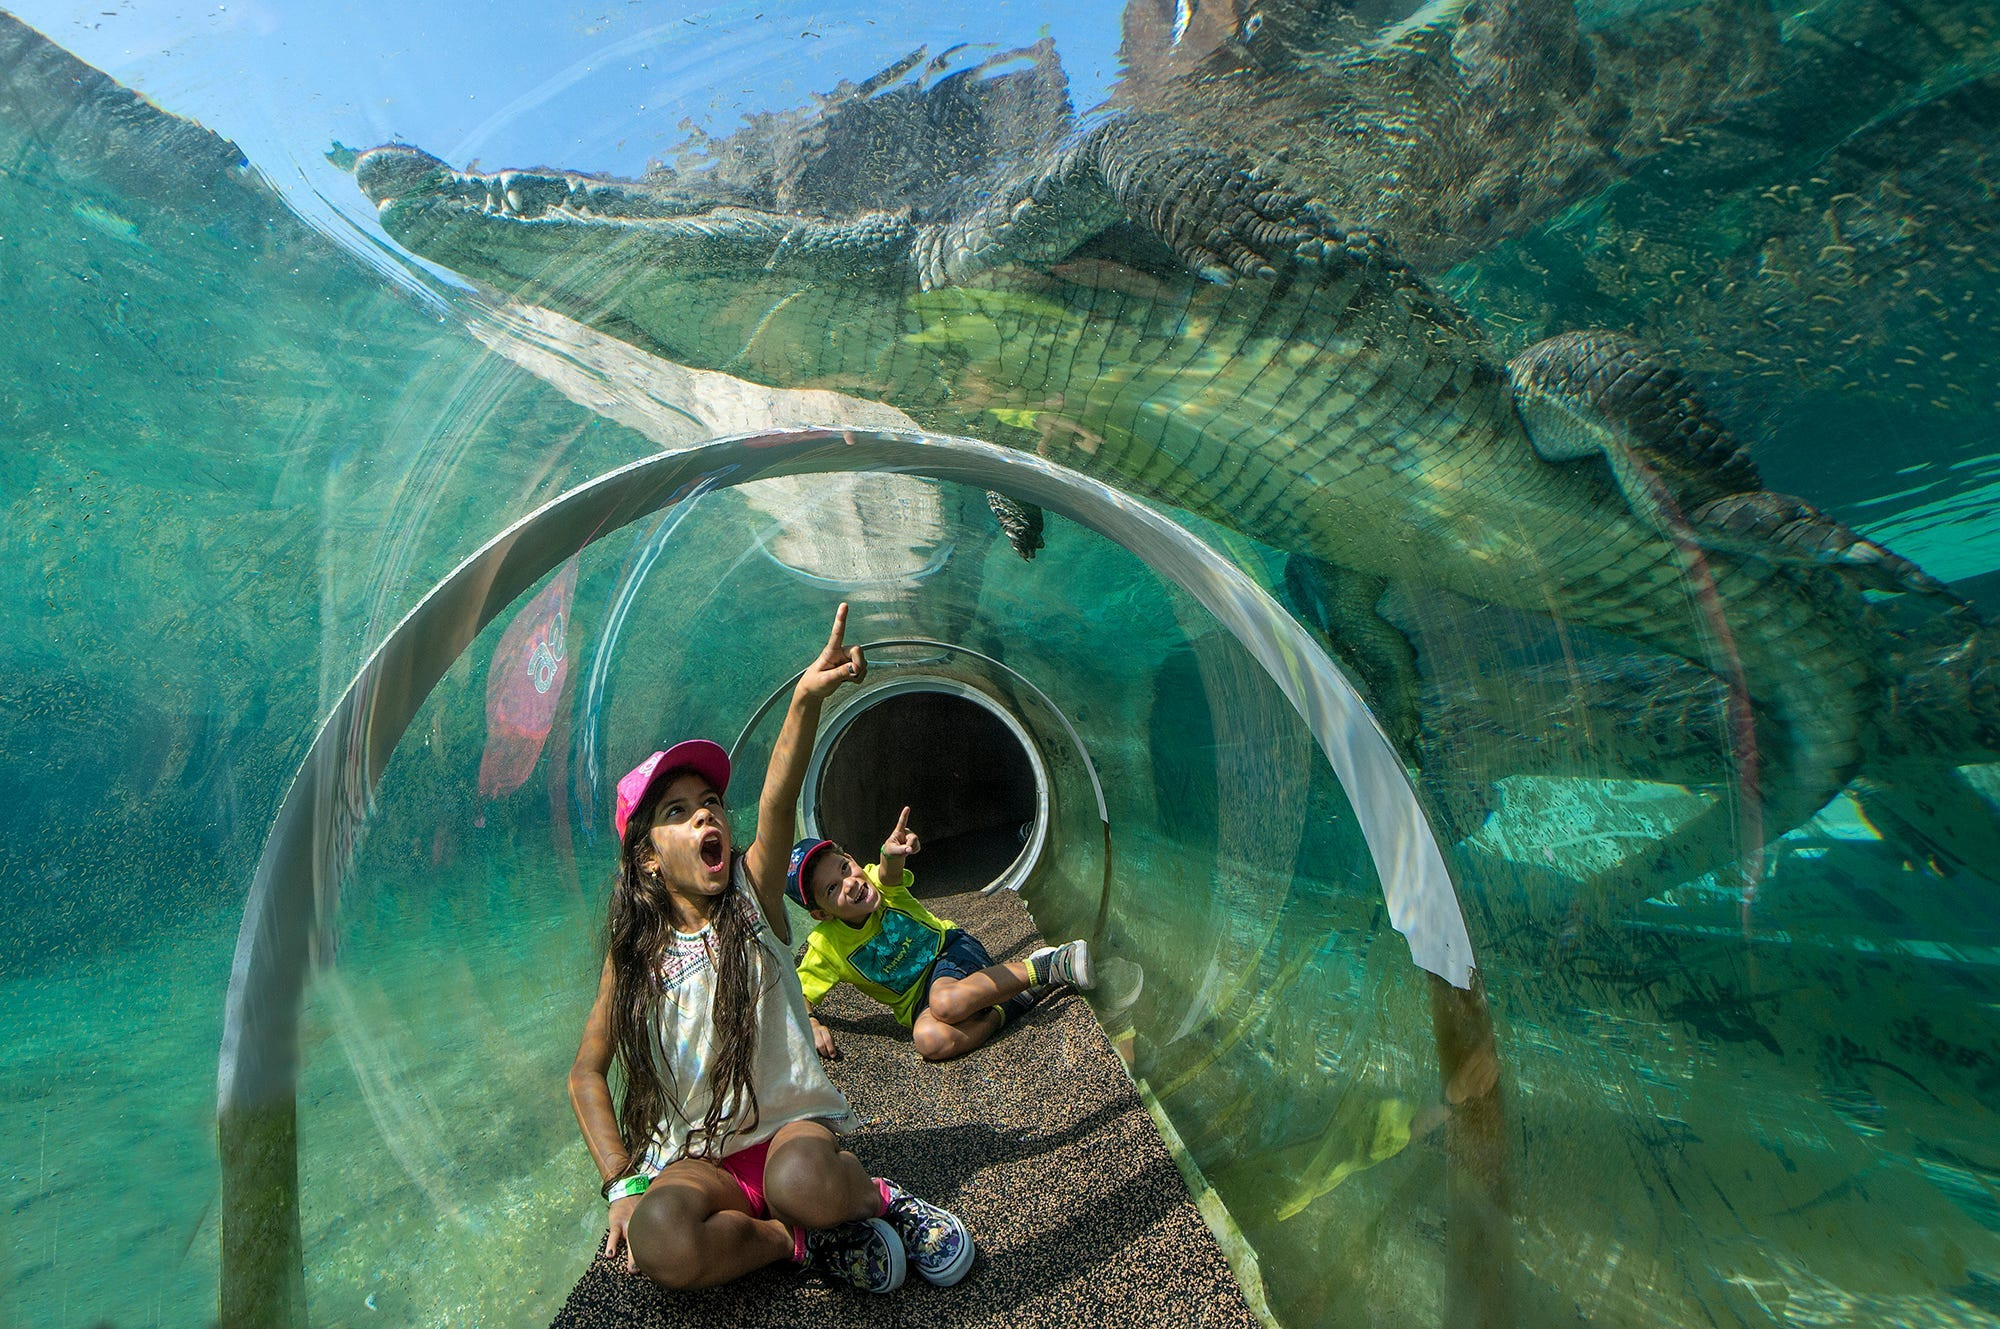 Cast your vote for the best attractions to visit this summer